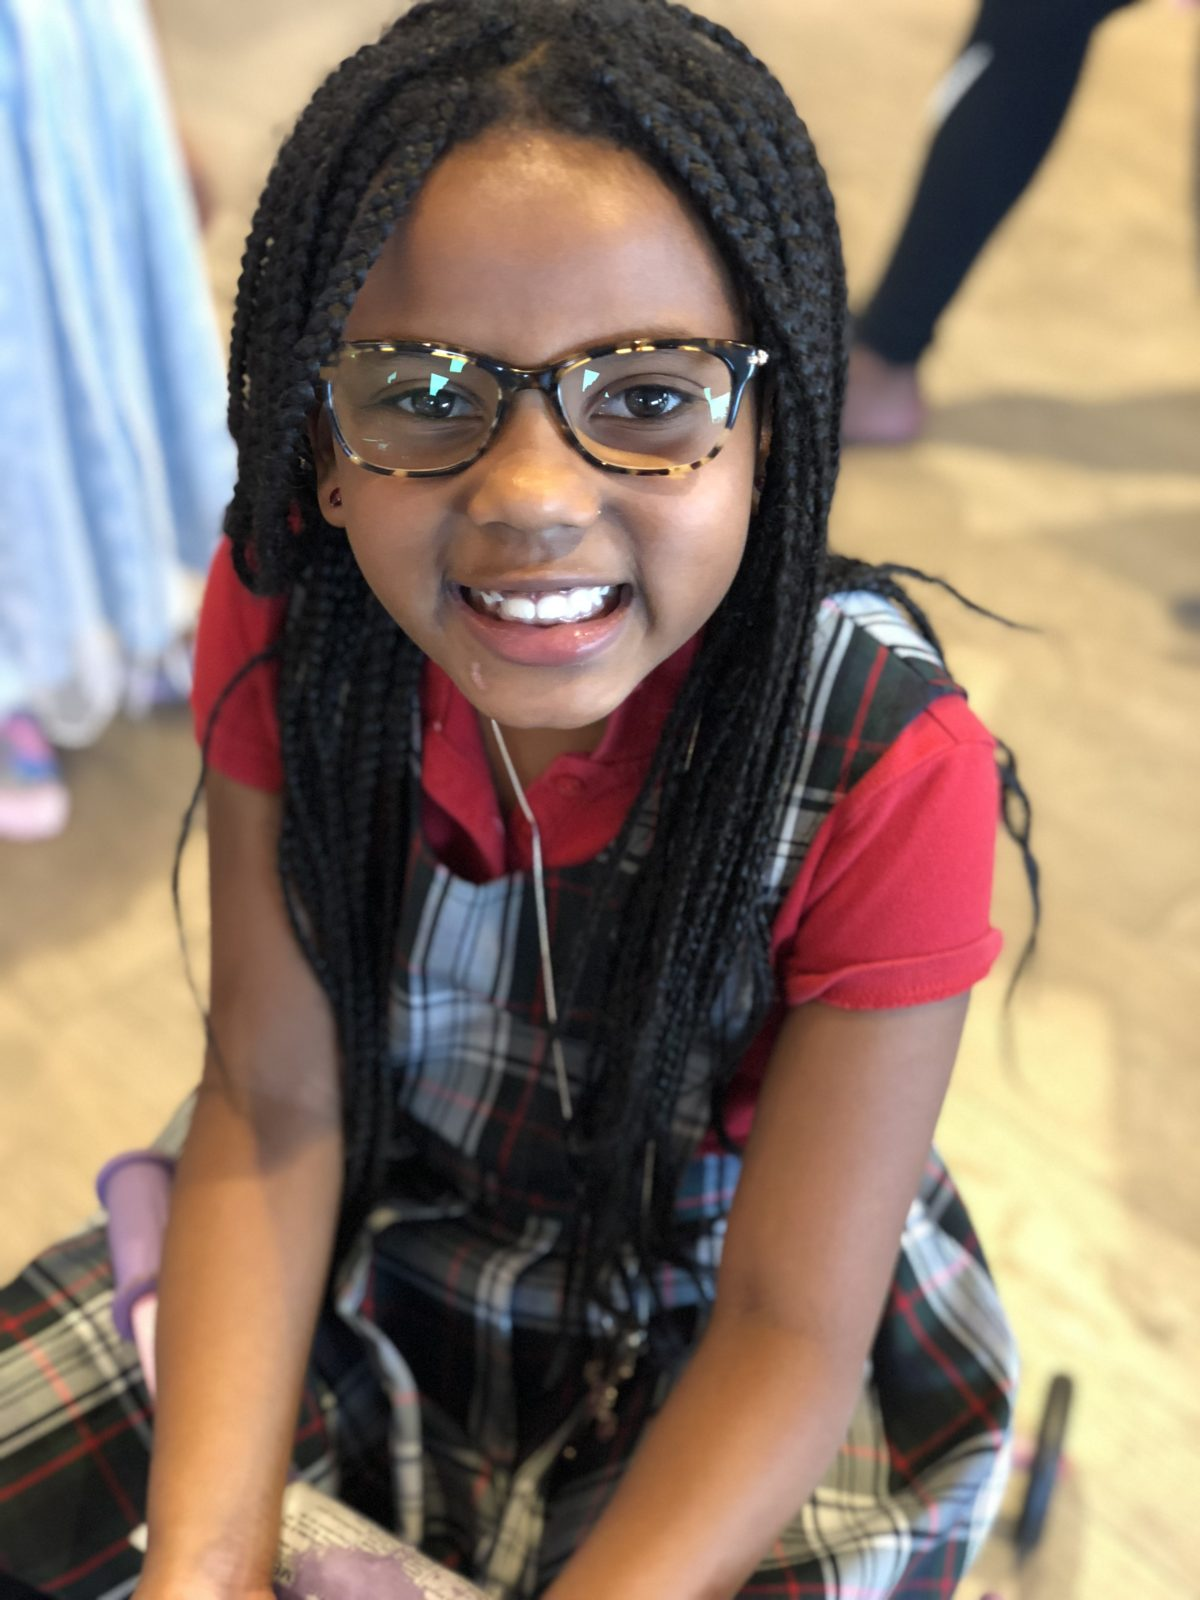 My daughter wearing glasses is so natural.